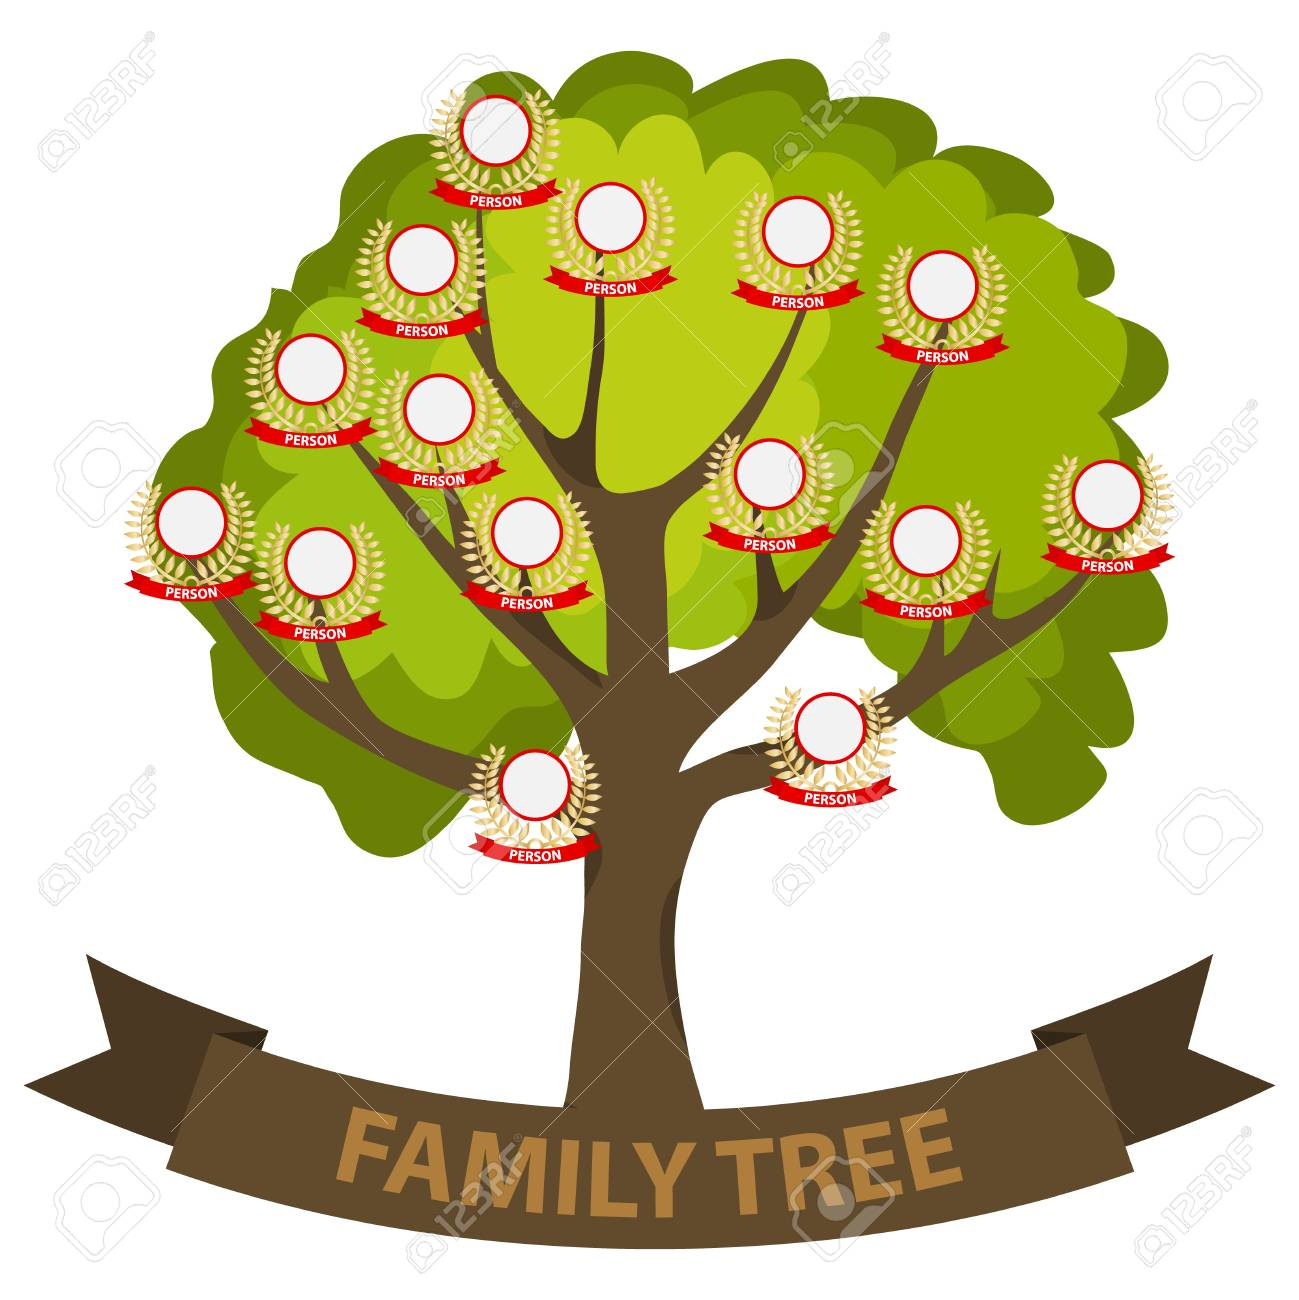 genealogy tree family tree with family members flat design